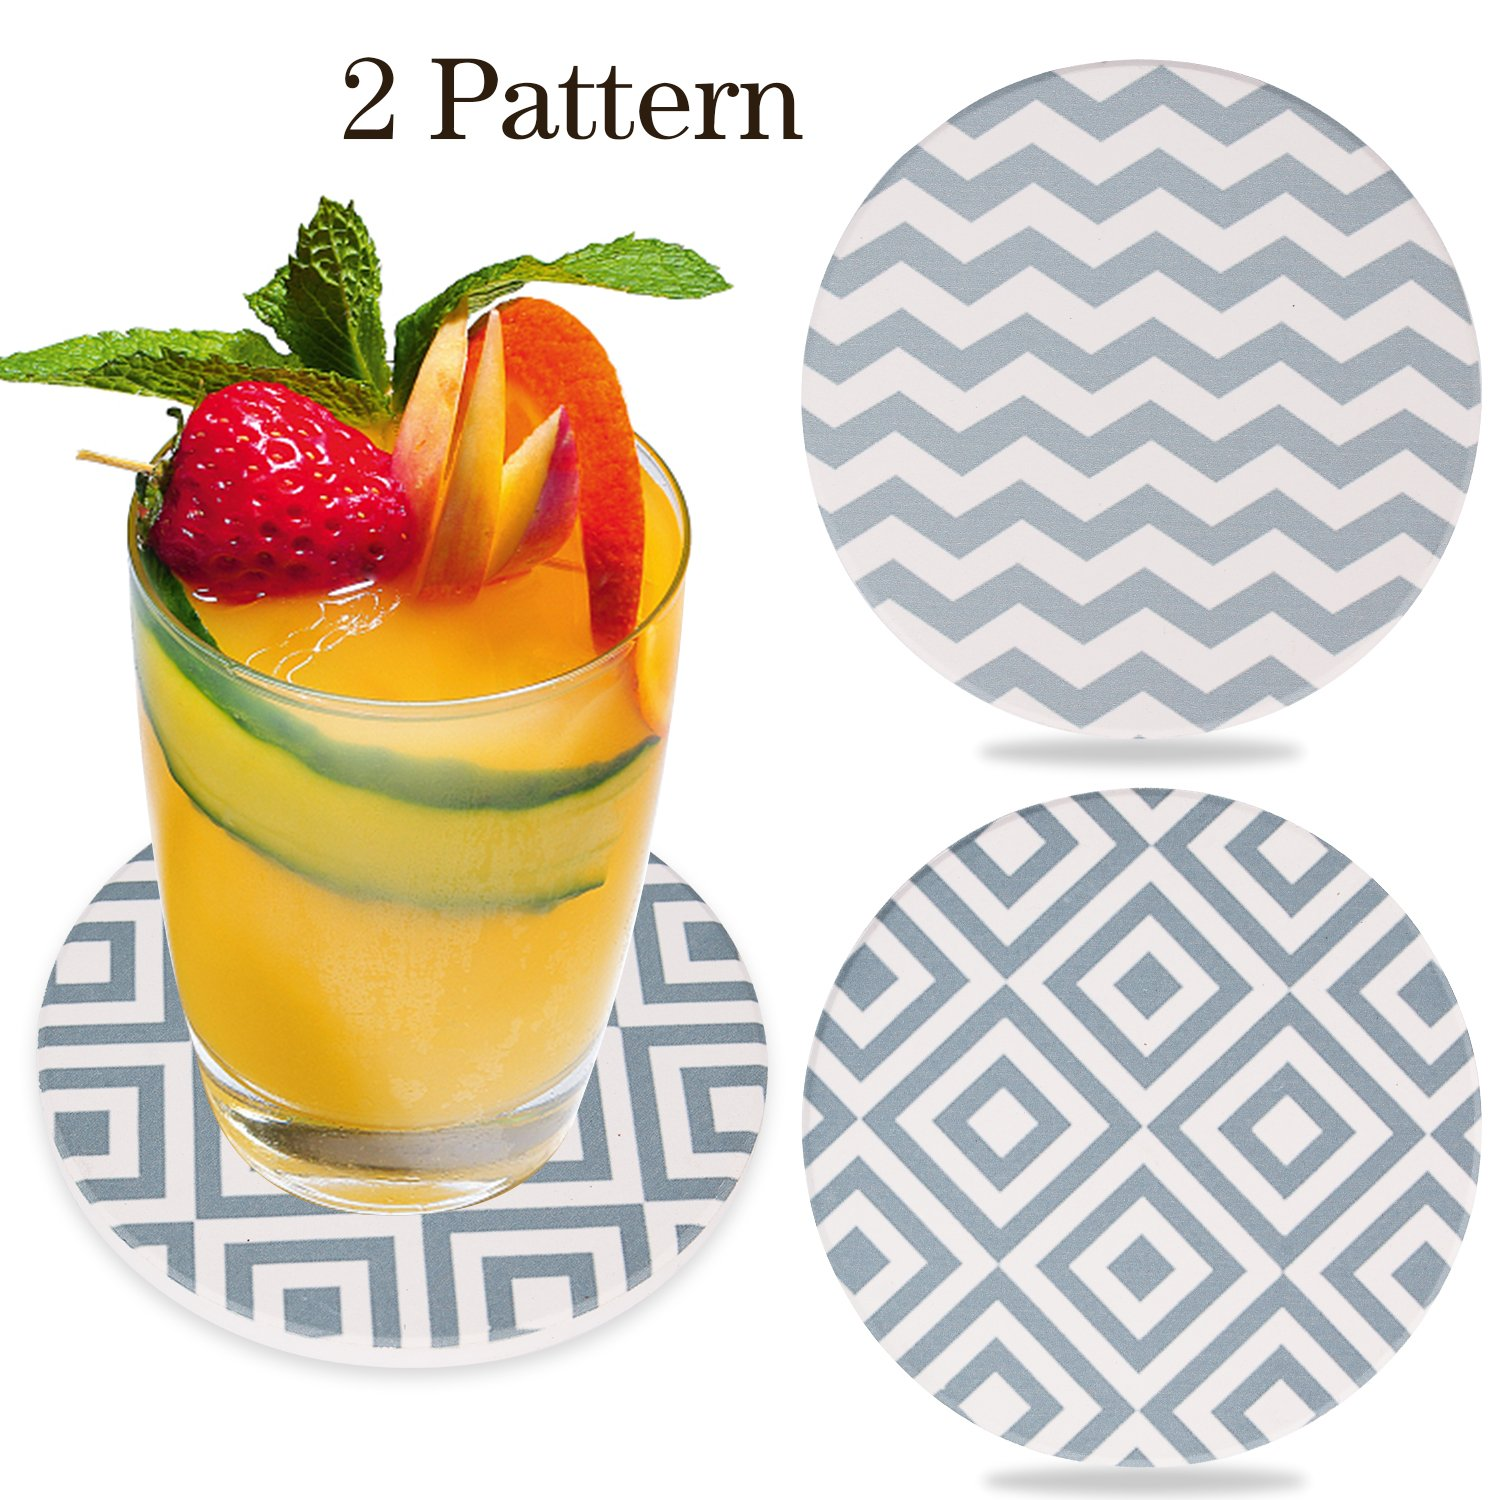 VOHUKO 6 Pcs Absorbent Coasters with Steel Holder,/2 Pattern Ceramic Stone Coasters Set Save Furniture From Drink Spill and Water Rings